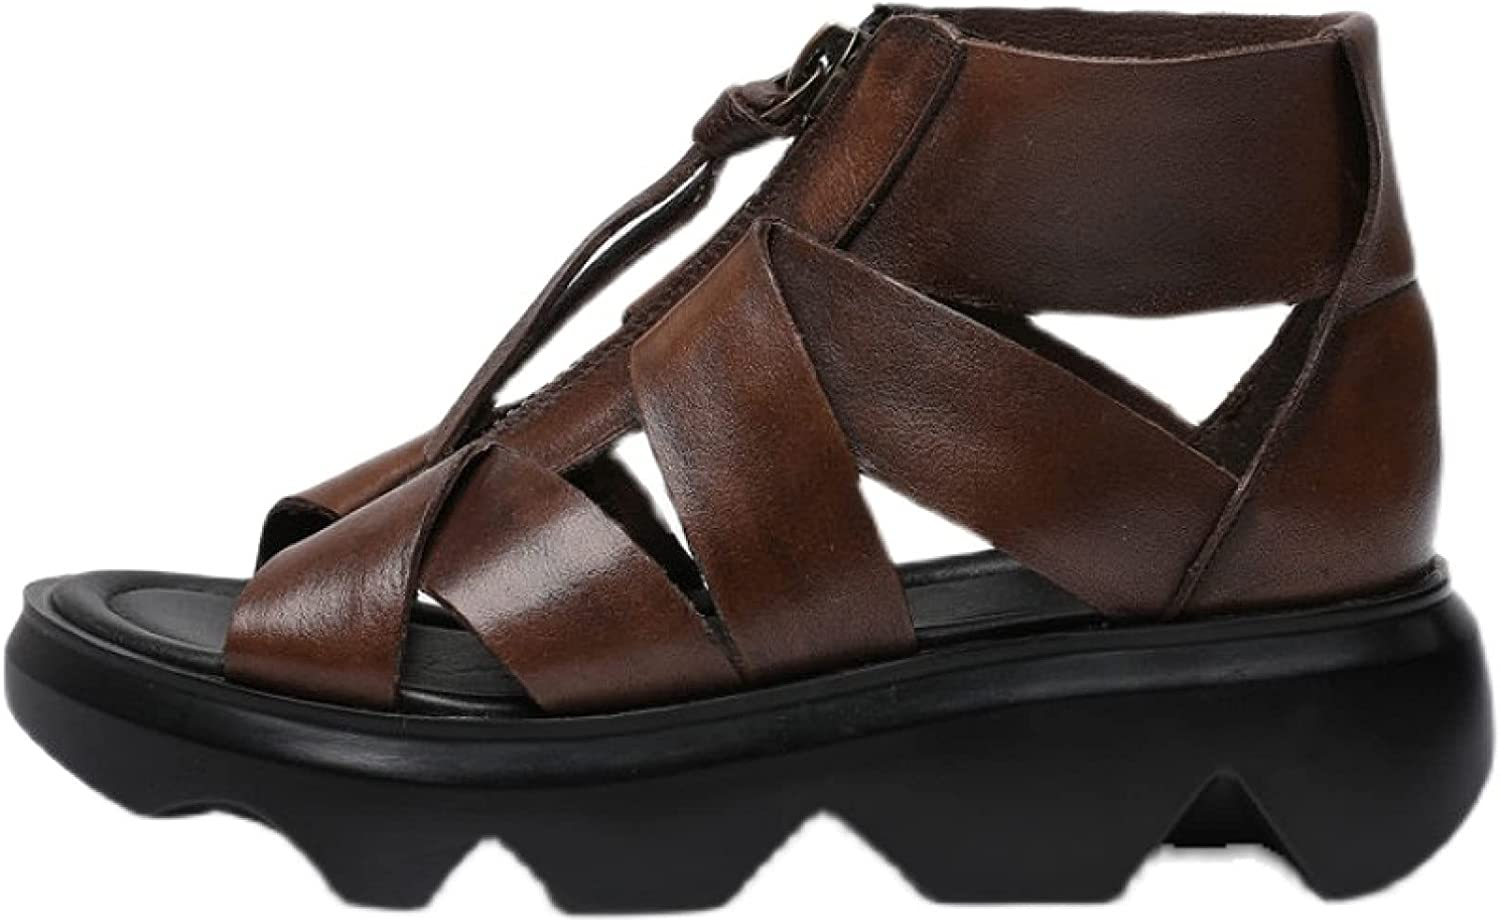 Women's Trendy Outdoor Vintage Hollow Out Breathable Durable Strappy Cozy Soft Leather Roman PlatformWedge Sandals